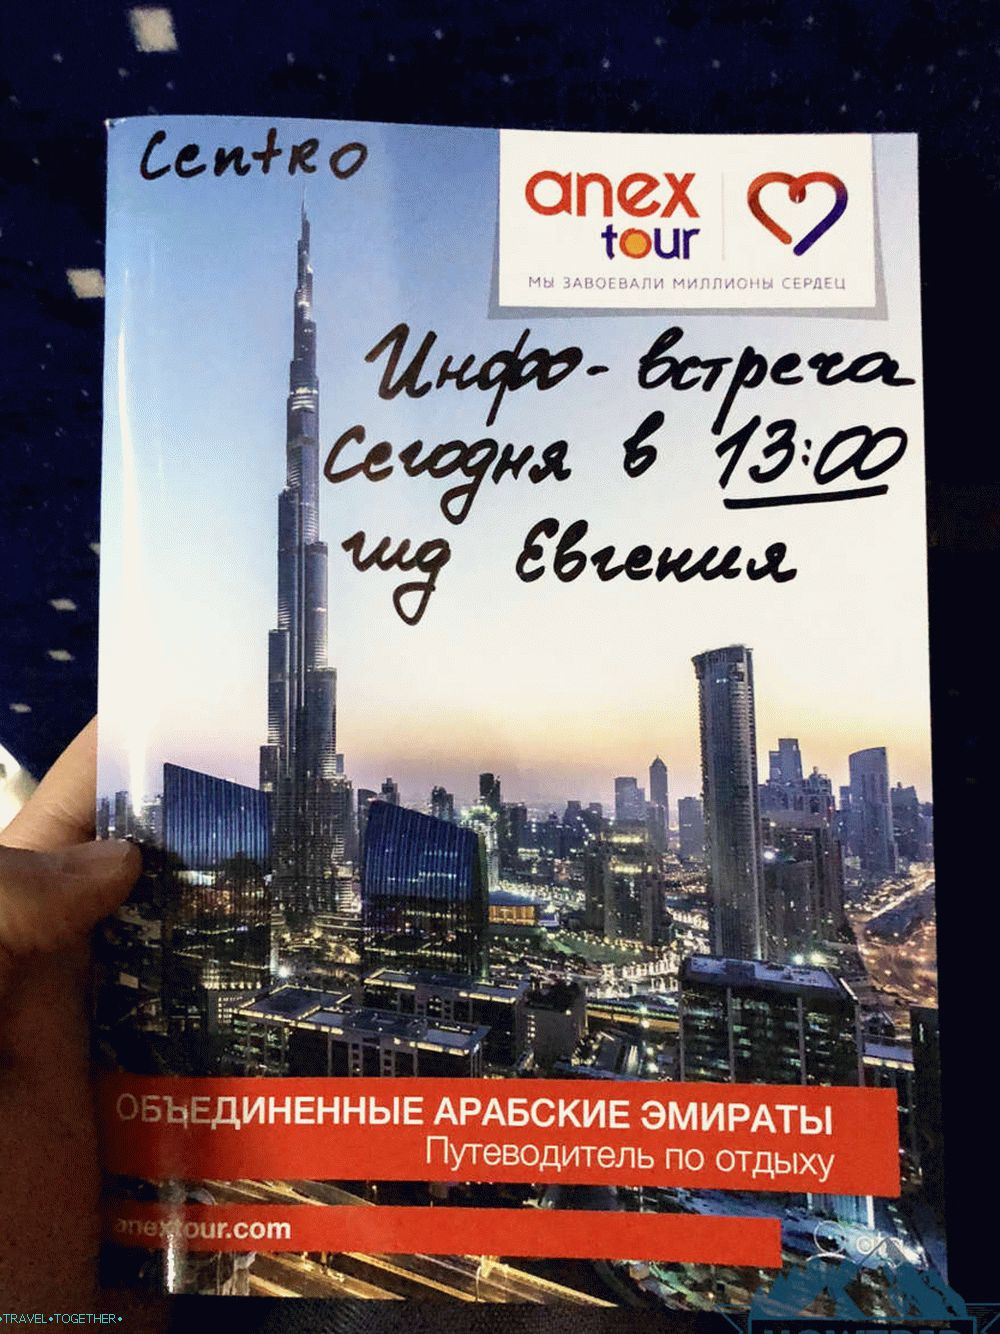 Anex tour in the hotel